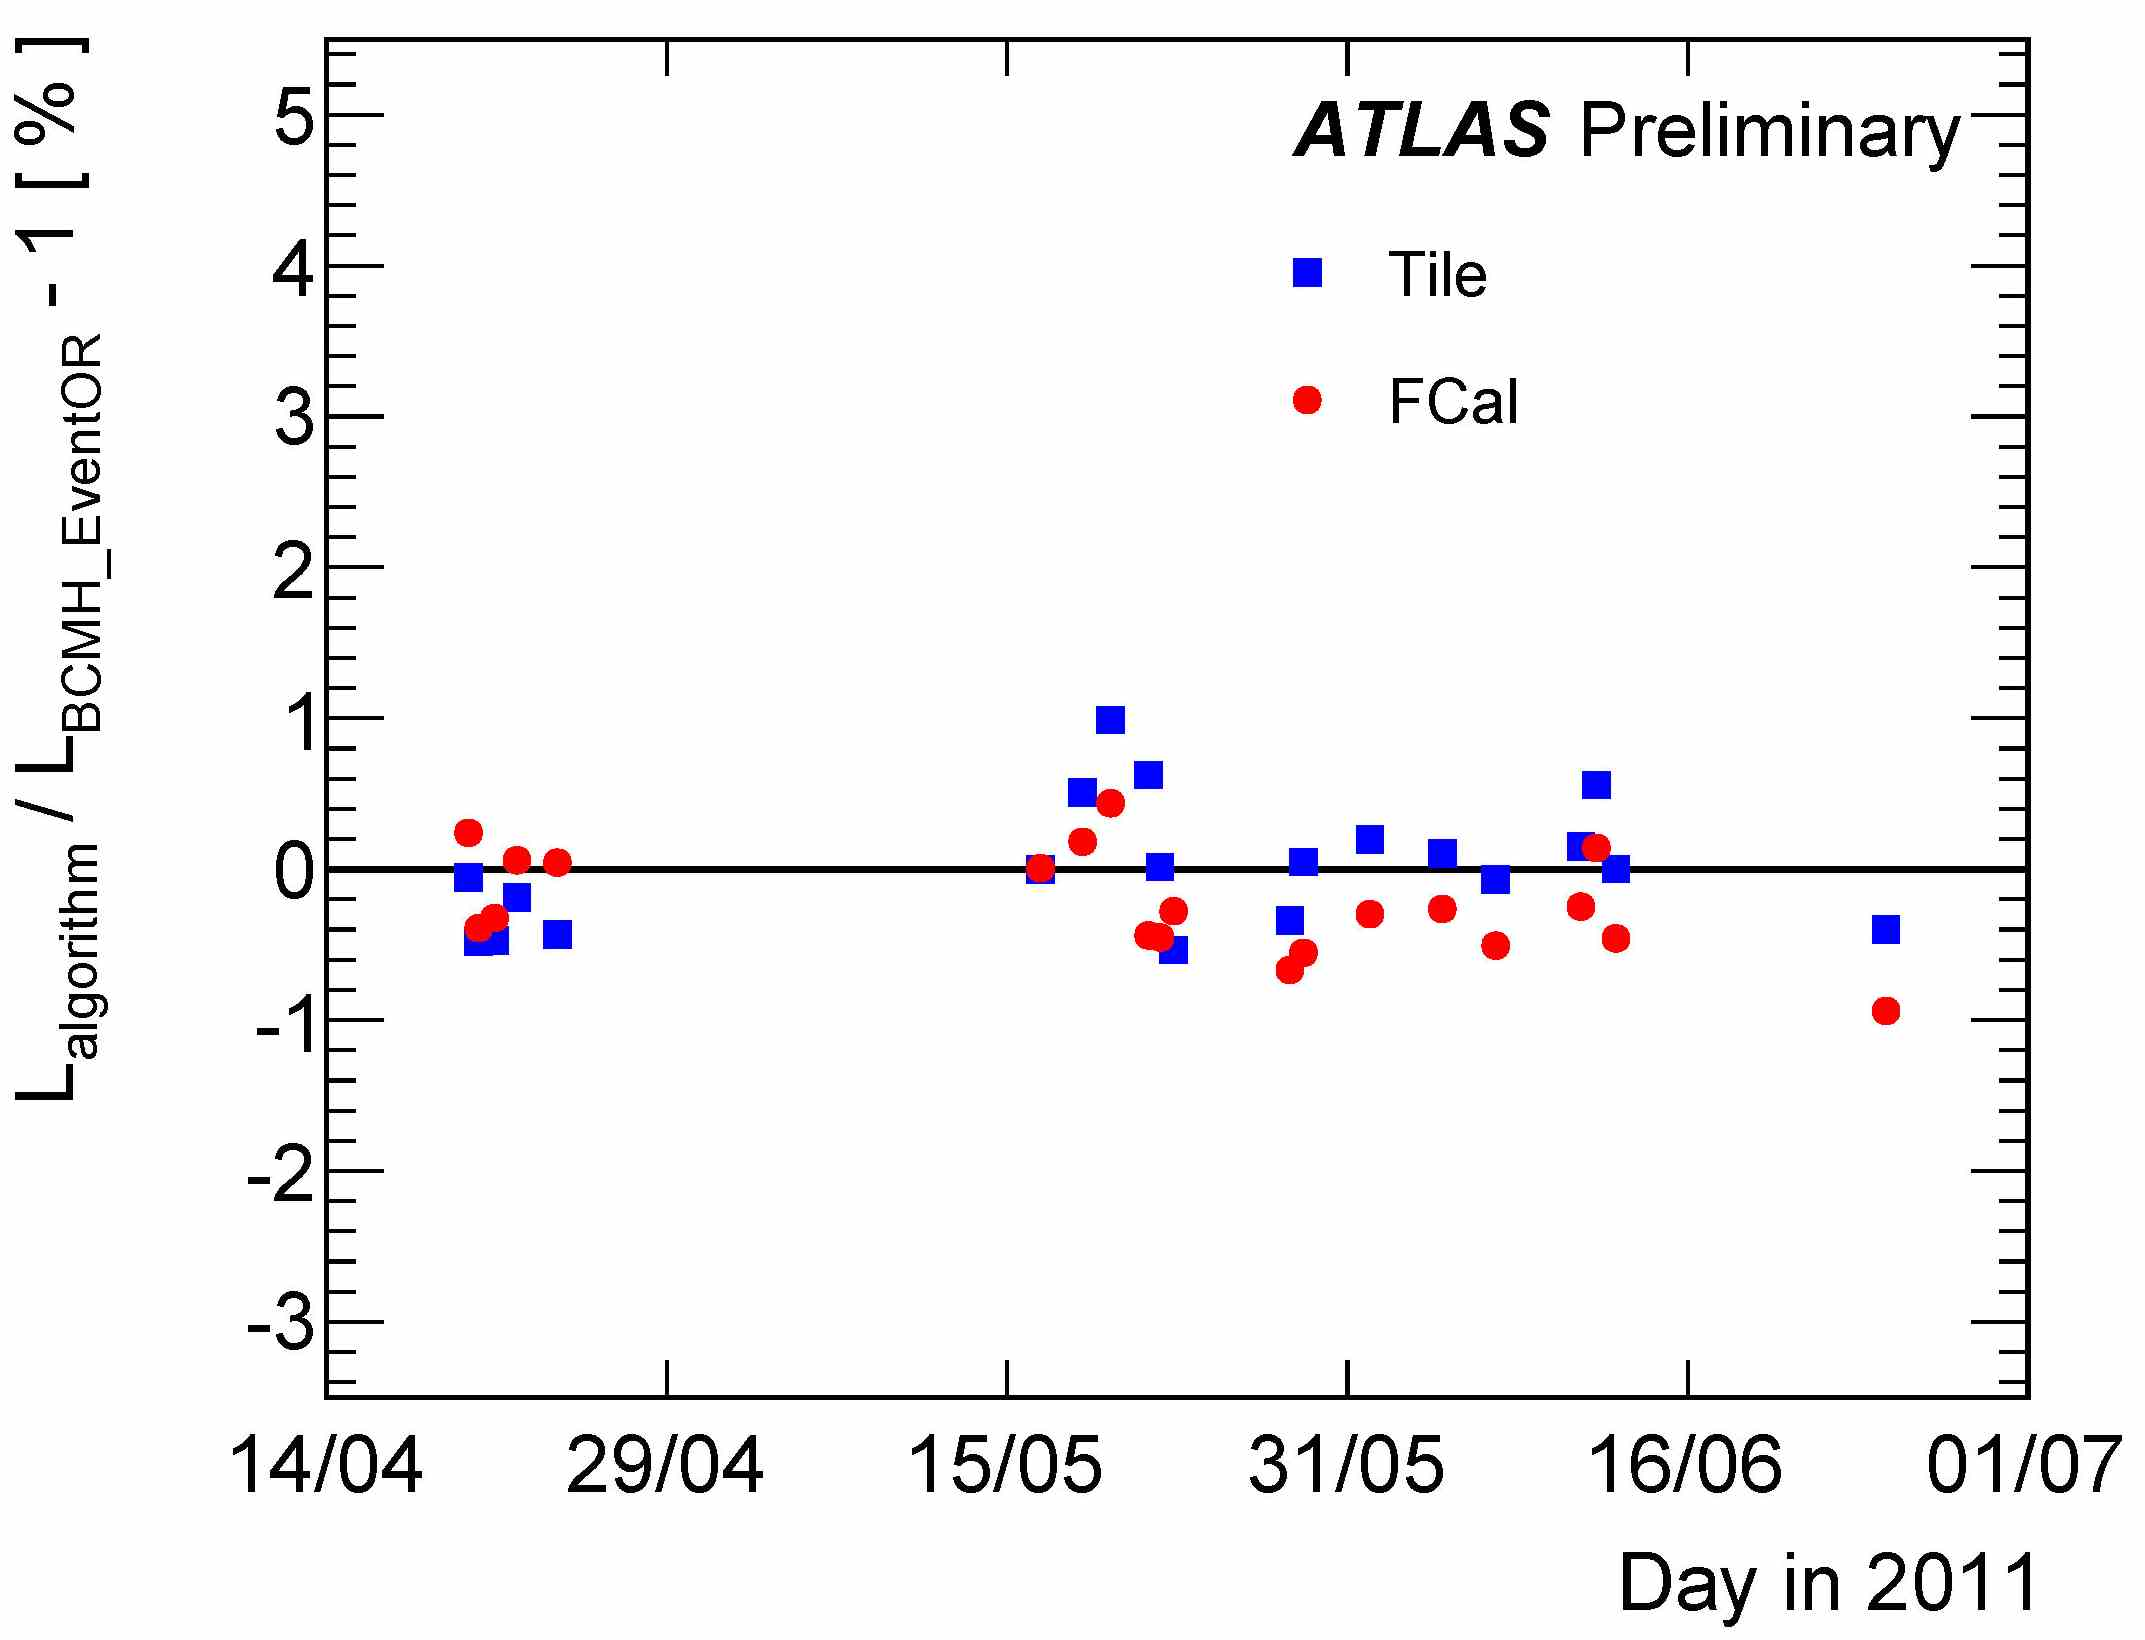 https://atlas.web.cern.ch/Atlas/GROUPS/DATAPREPARATION/PublicPlots/2011/Luminosity/timeStability.jpg